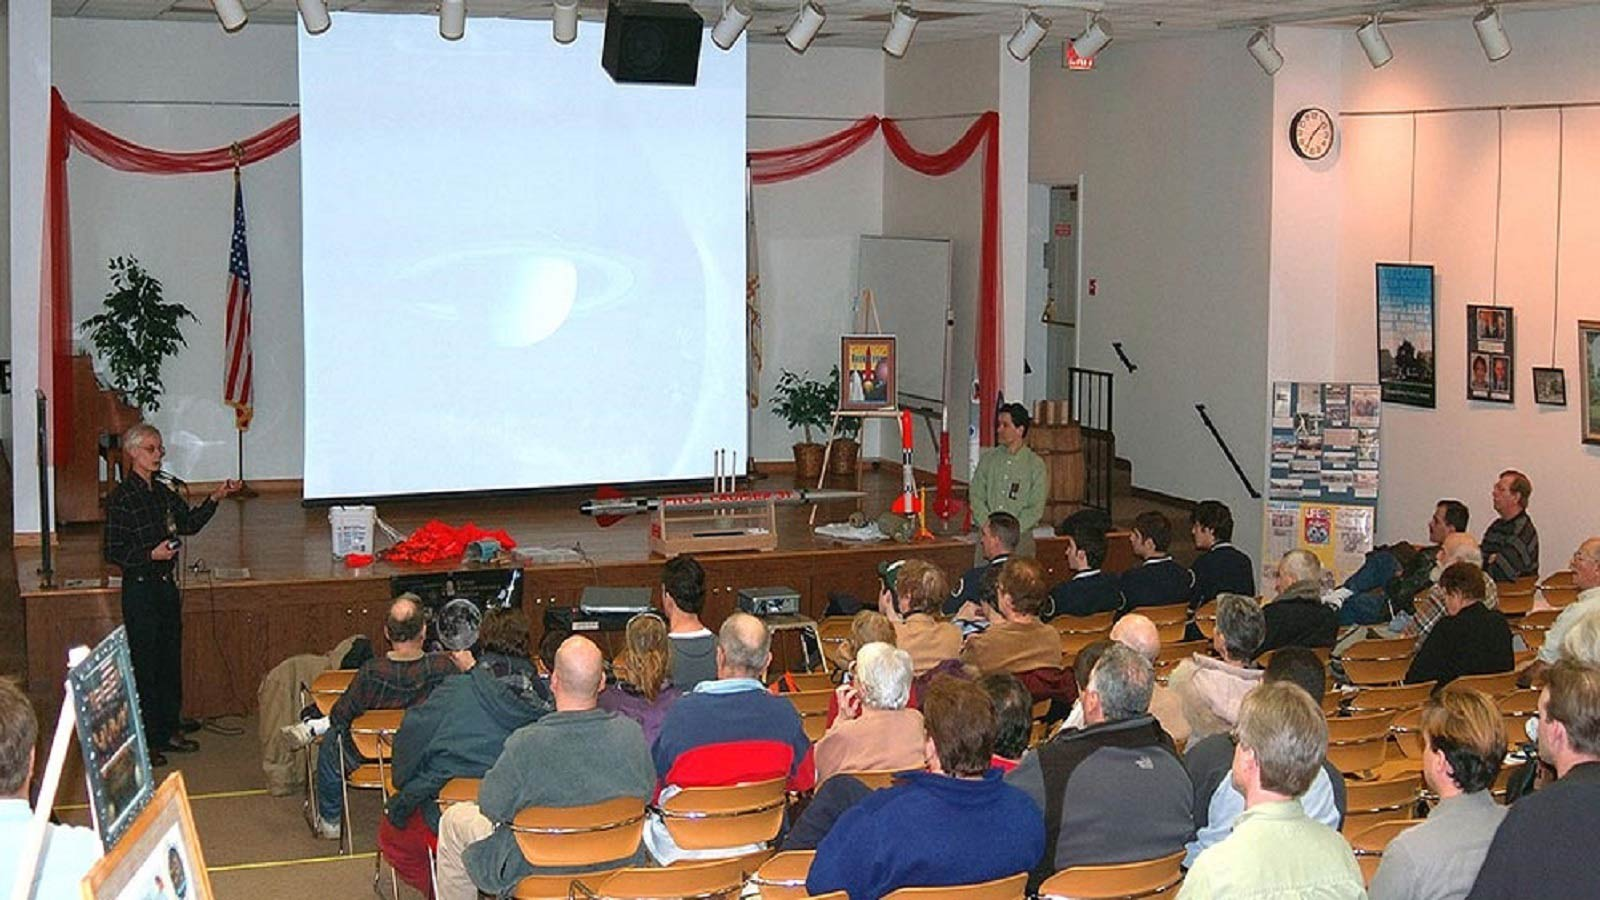 A public program by the Chicago Society For Space Studies NSS chapter